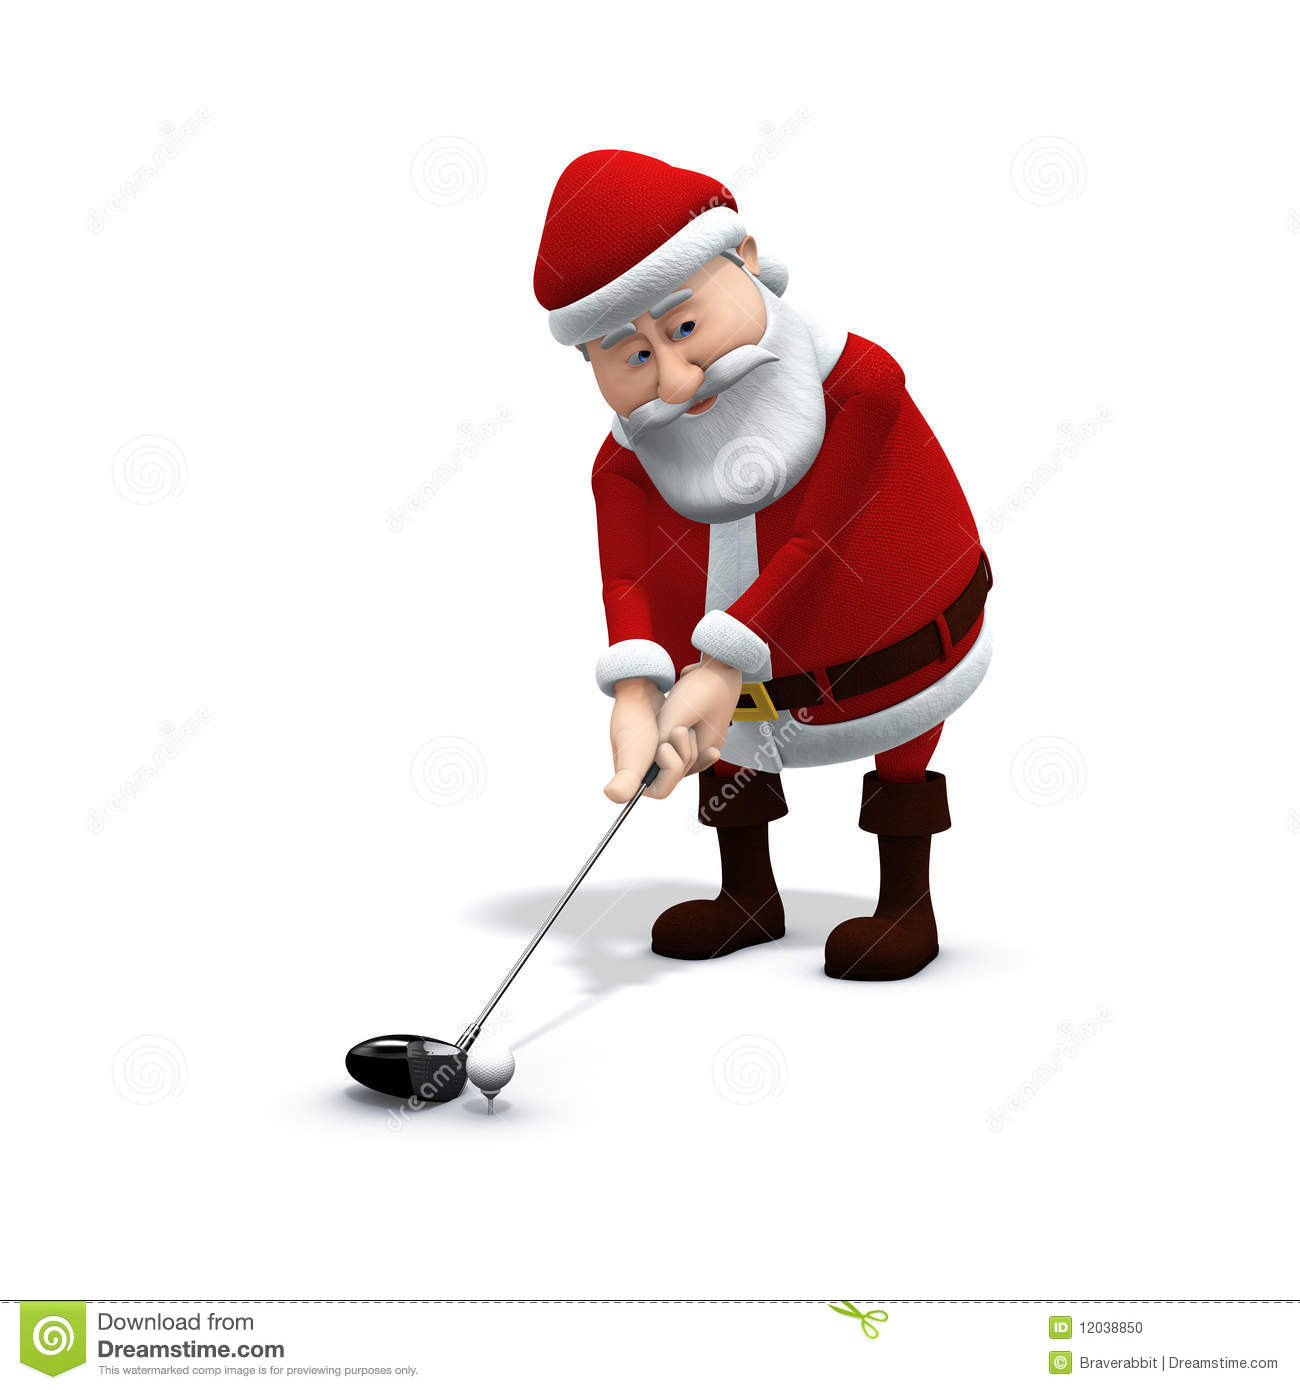 Santa Golf 2 Stock Photos, Images, & Pictures.